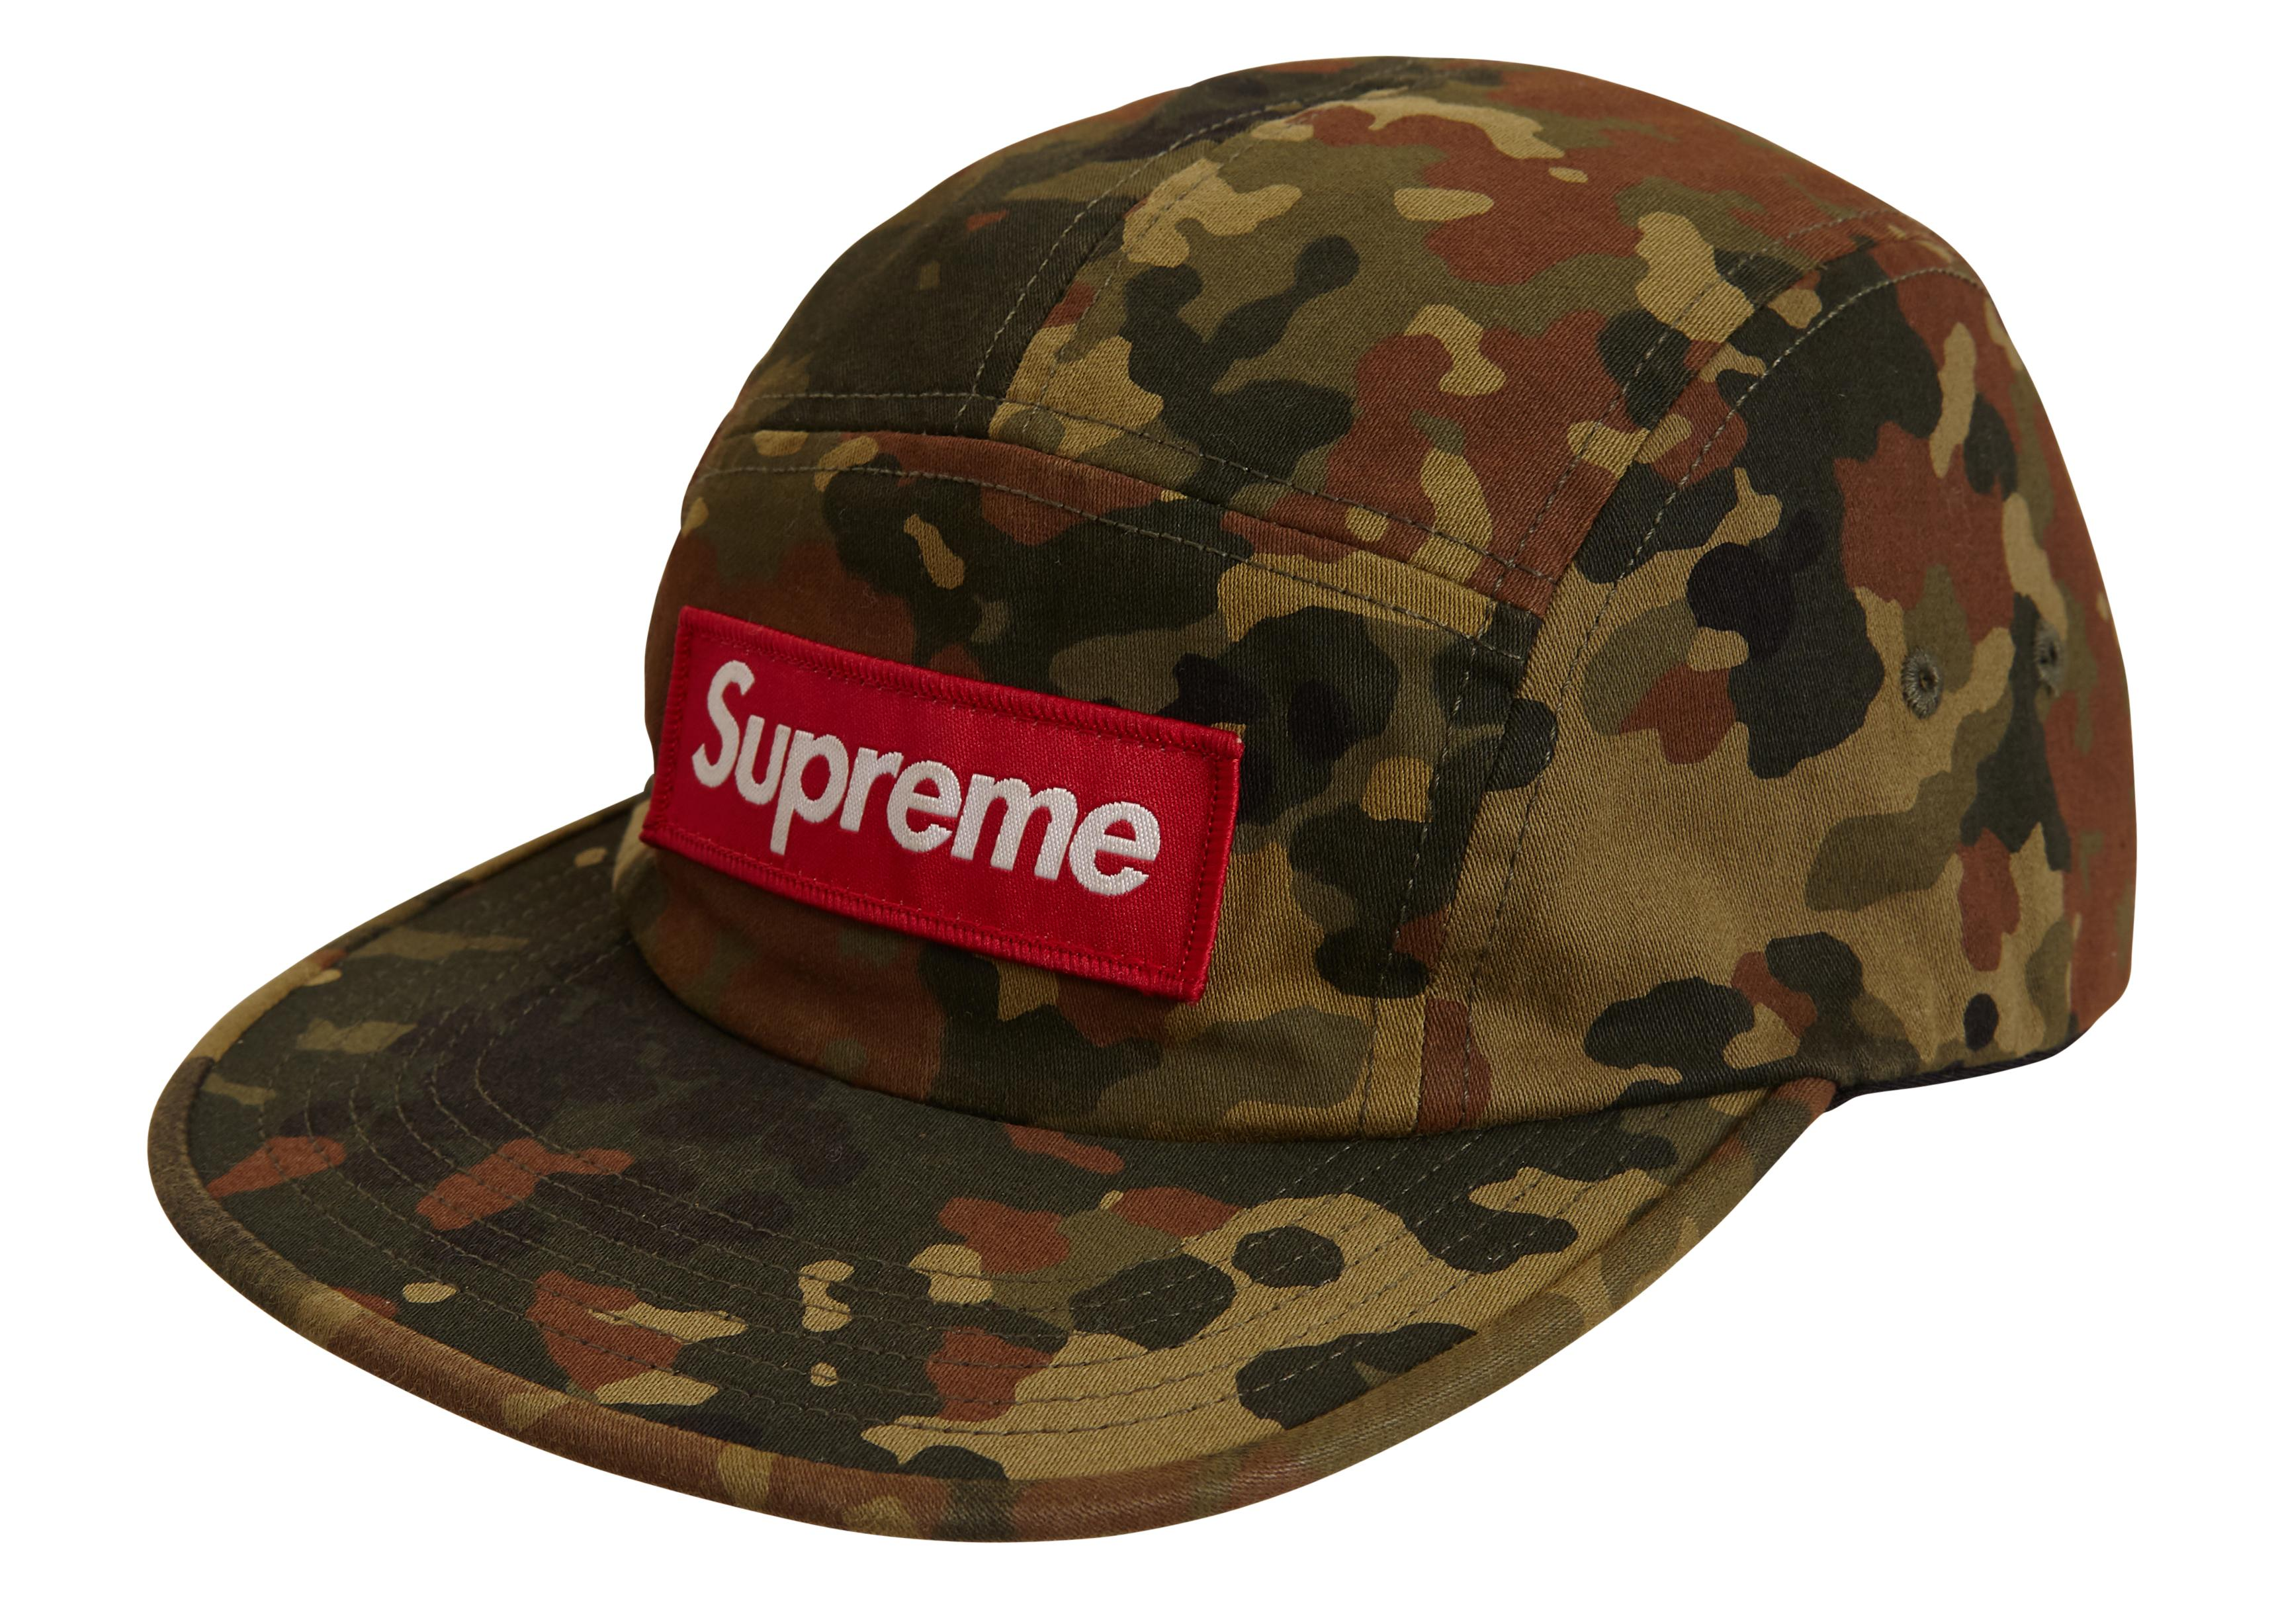 FW17 NEW BOX LOGO HOODIE NEON SUPREME BOULCE HOUNDSTOOTH CAMP CAP